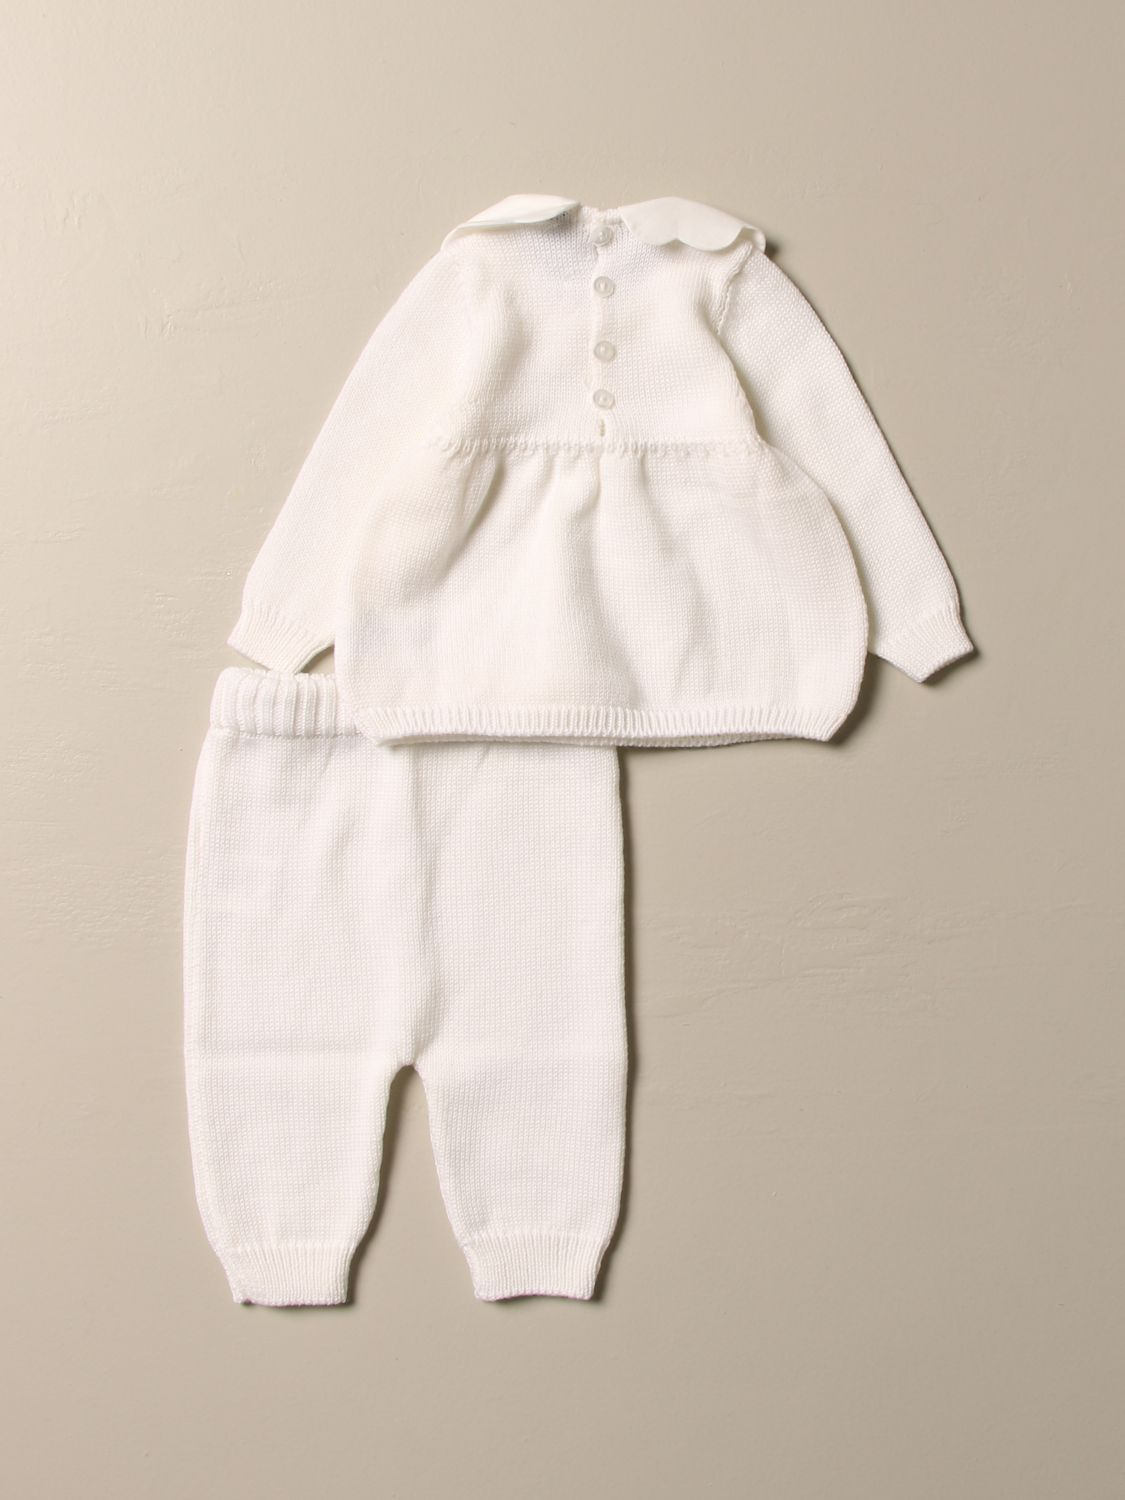 Jumpsuit Siola: Suit kids Siola yellow cream 2